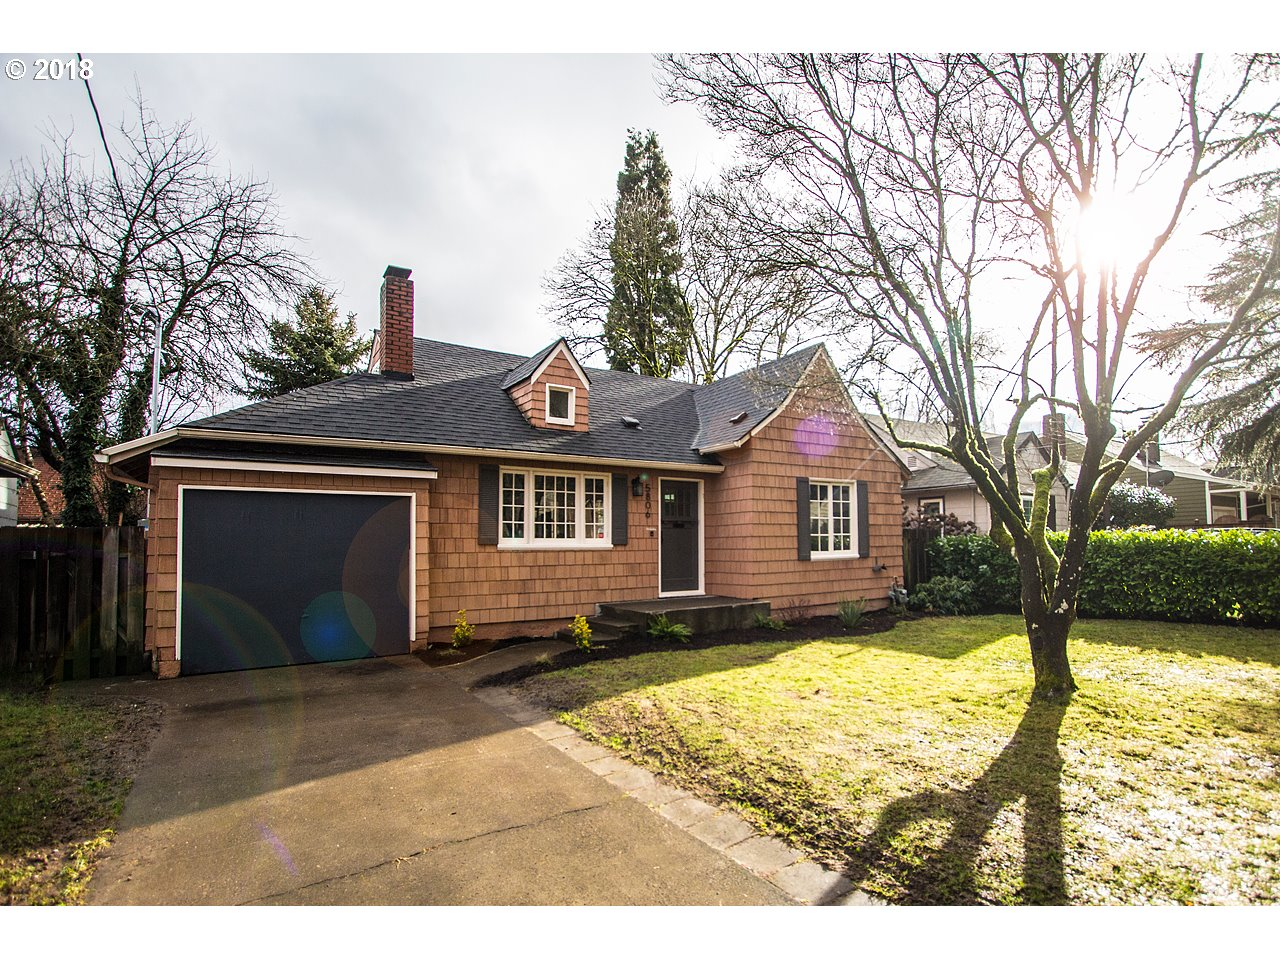 1790 sq. ft 3 bedrooms 2 bathrooms  House For Sale,Portland, OR